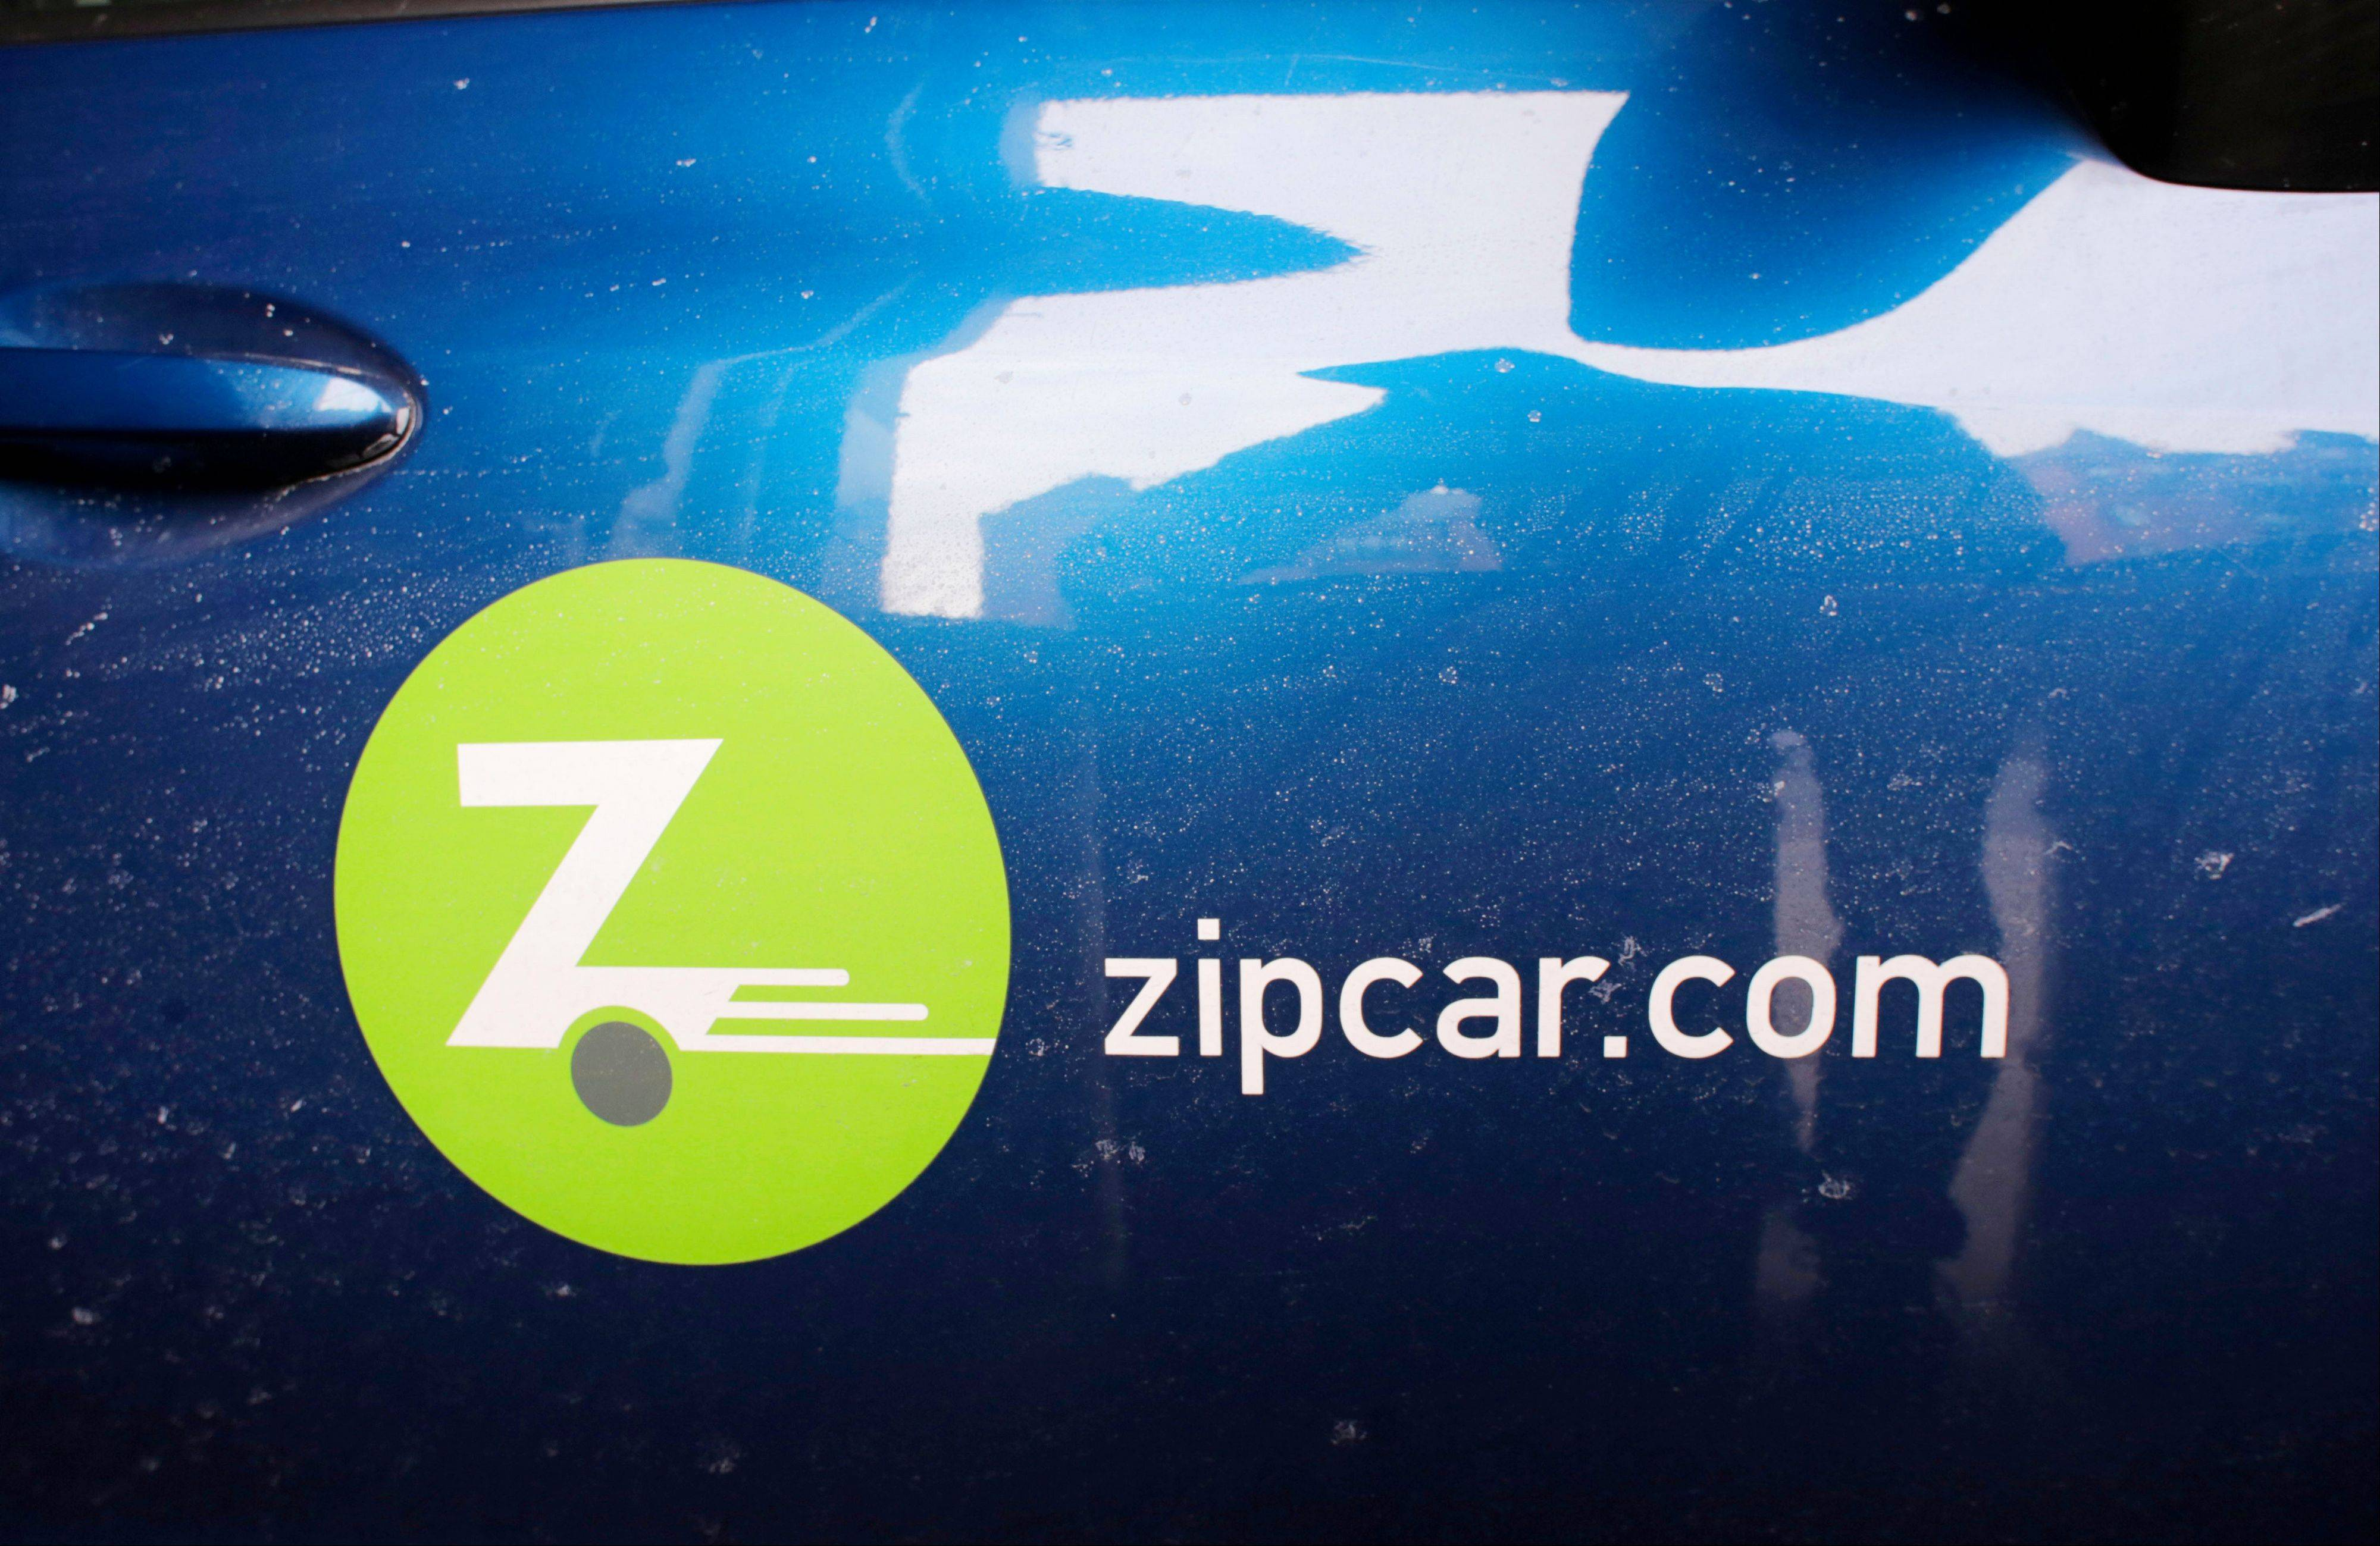 A Avis is buying Zipcar for $491.2 million, expanding its offerings from traditional car rentals to car sharing services.